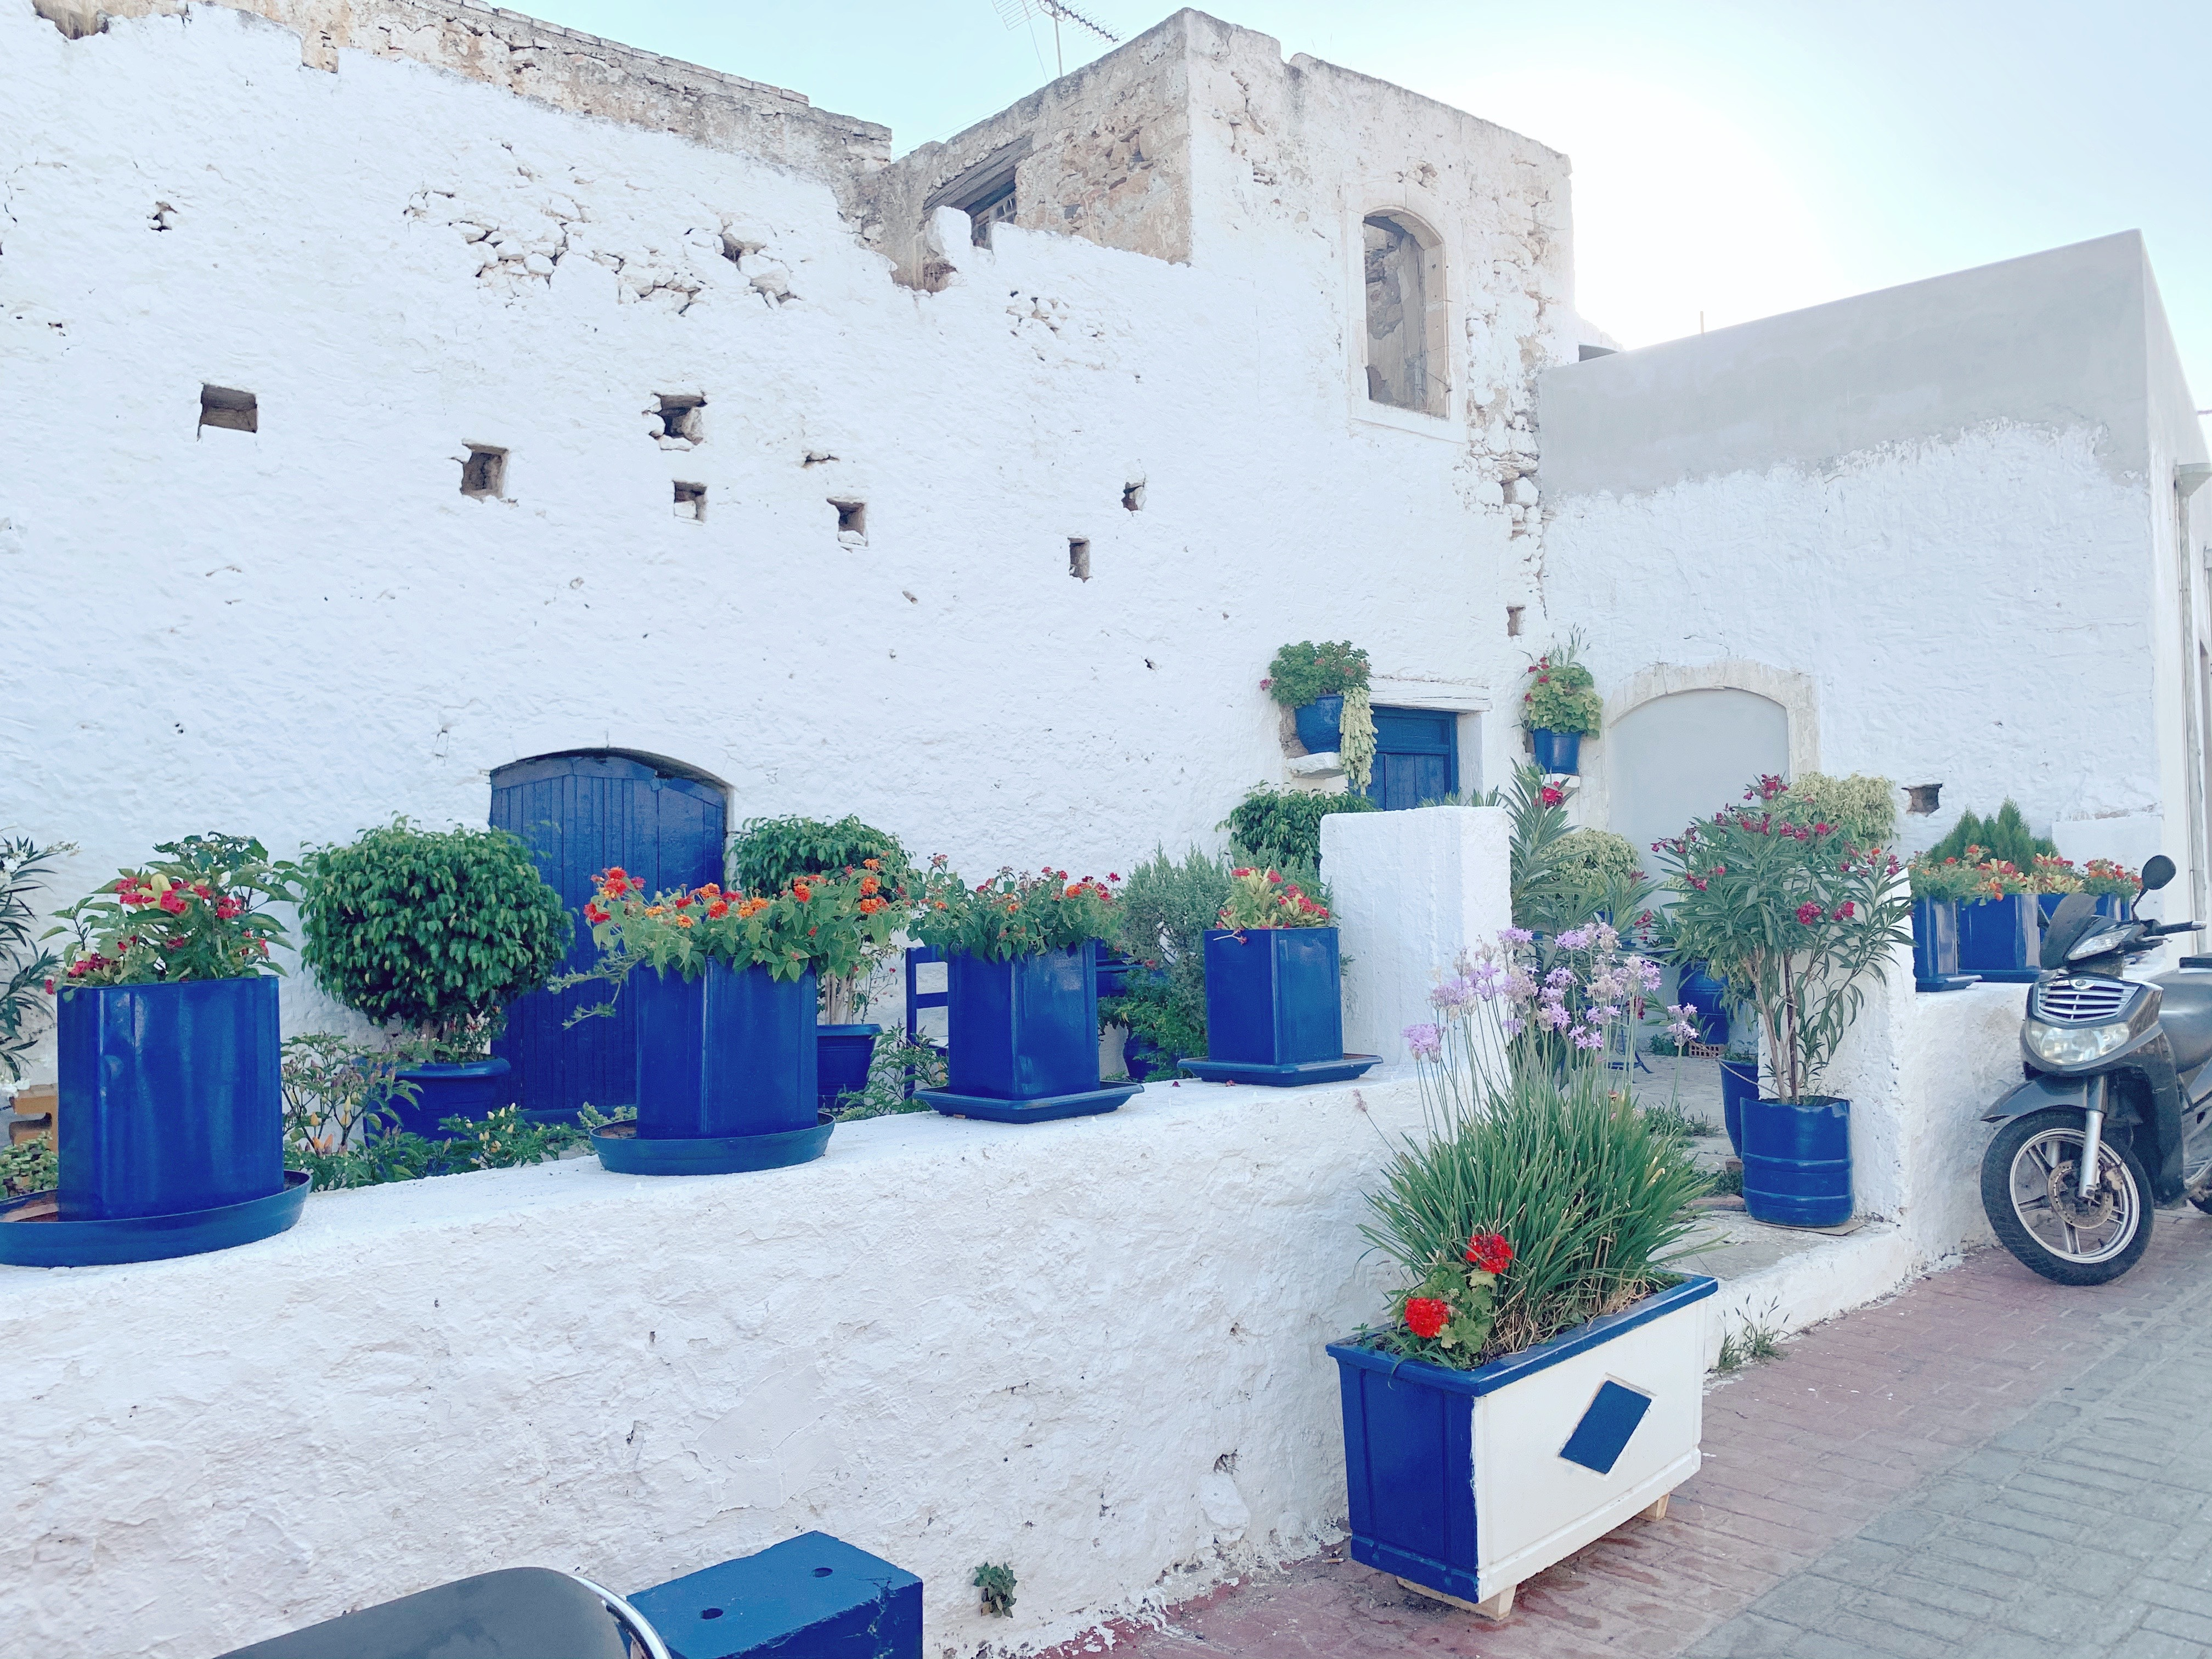 acs 0136 - Crete, Greece